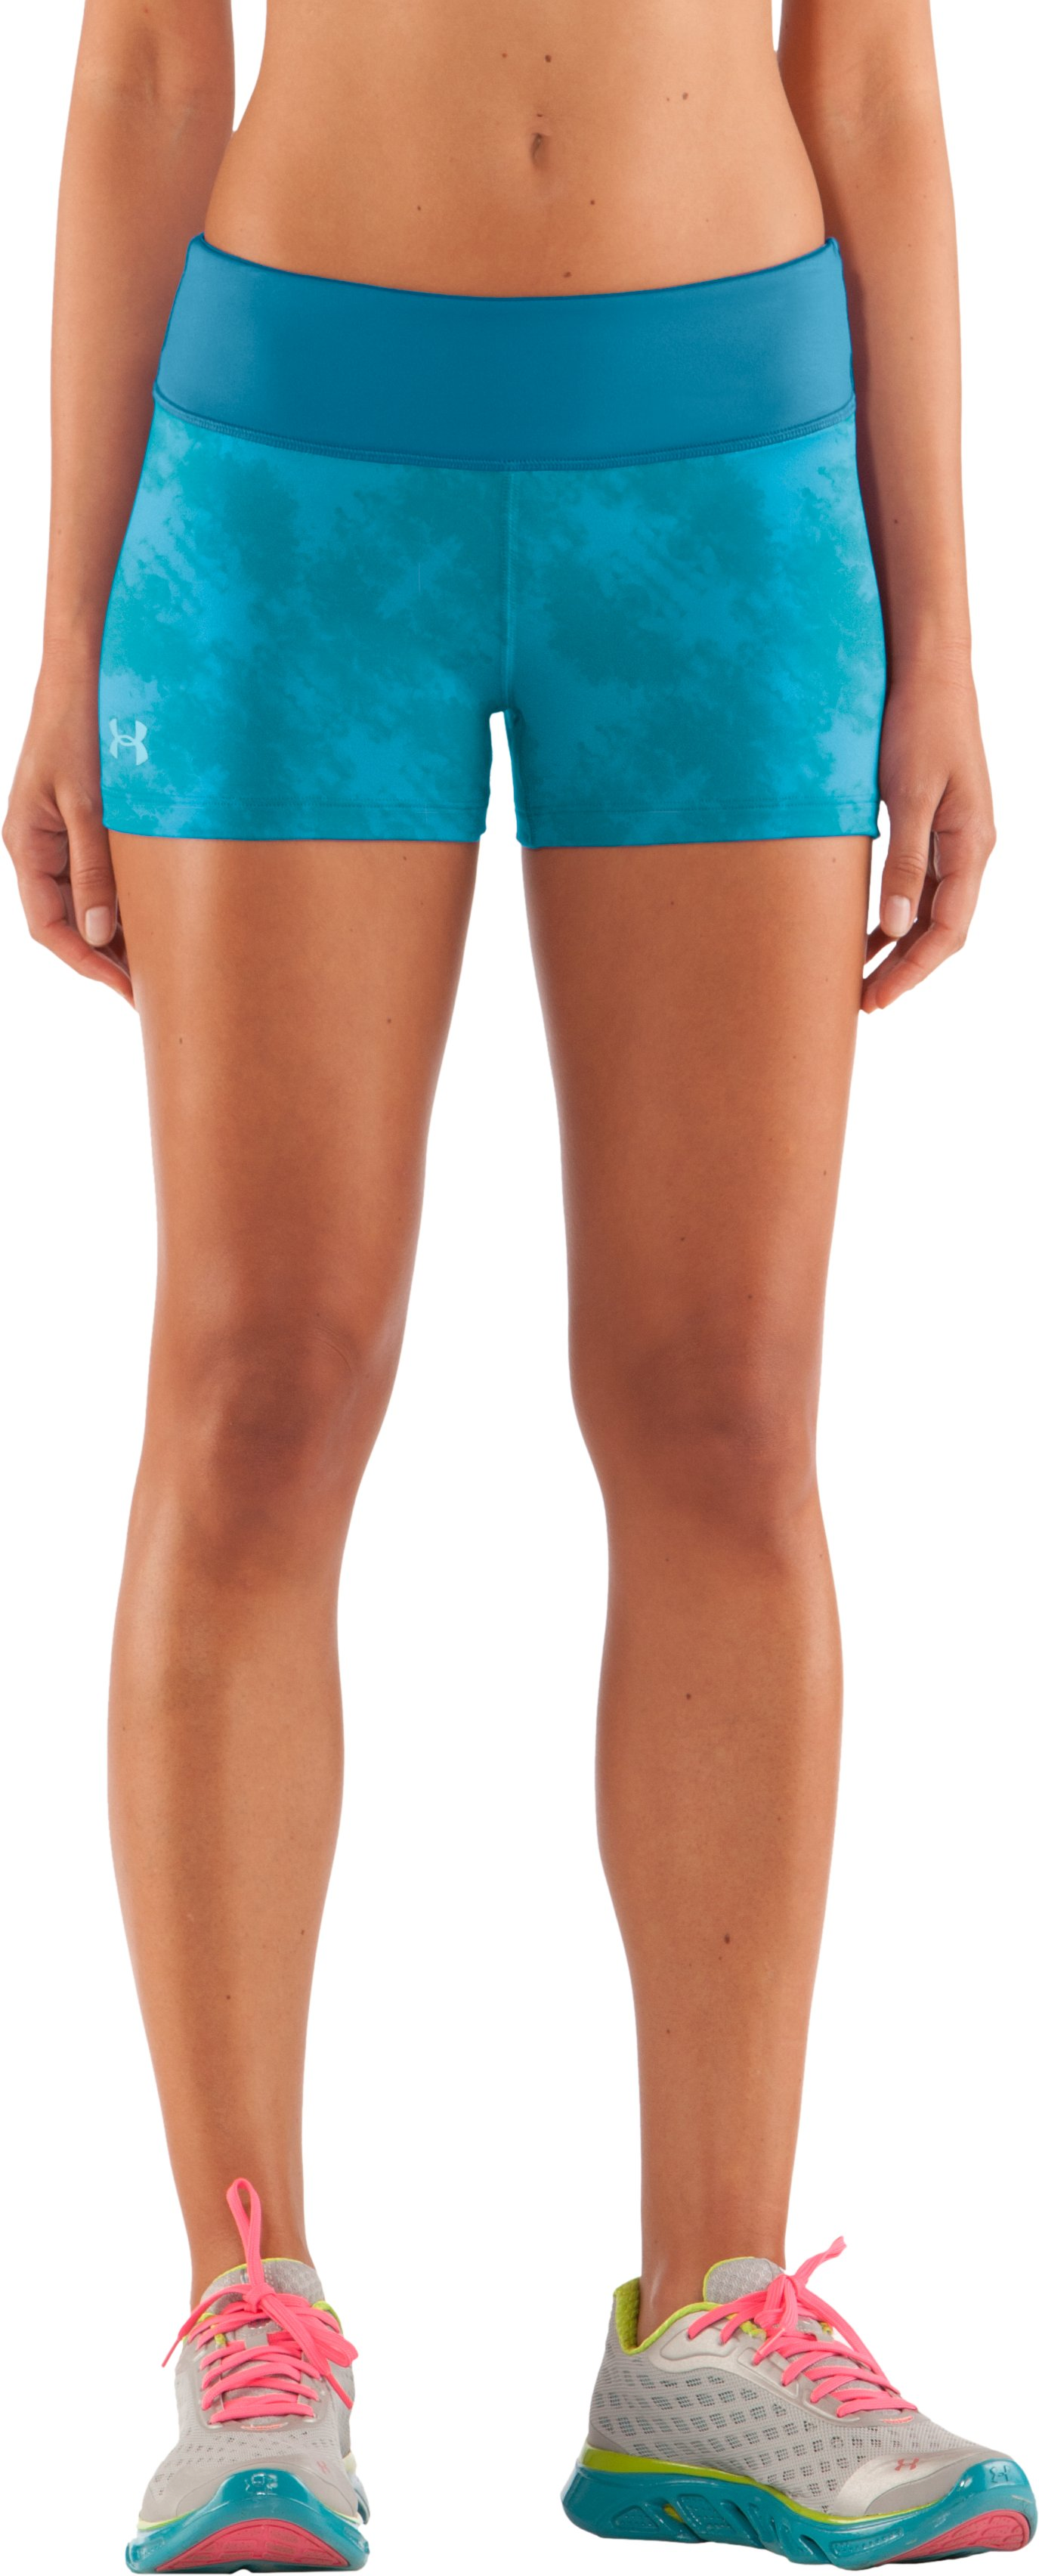 "Women's HeatGear® Sonic 2.5"" Printed Shorty, Cortez, zoomed image"